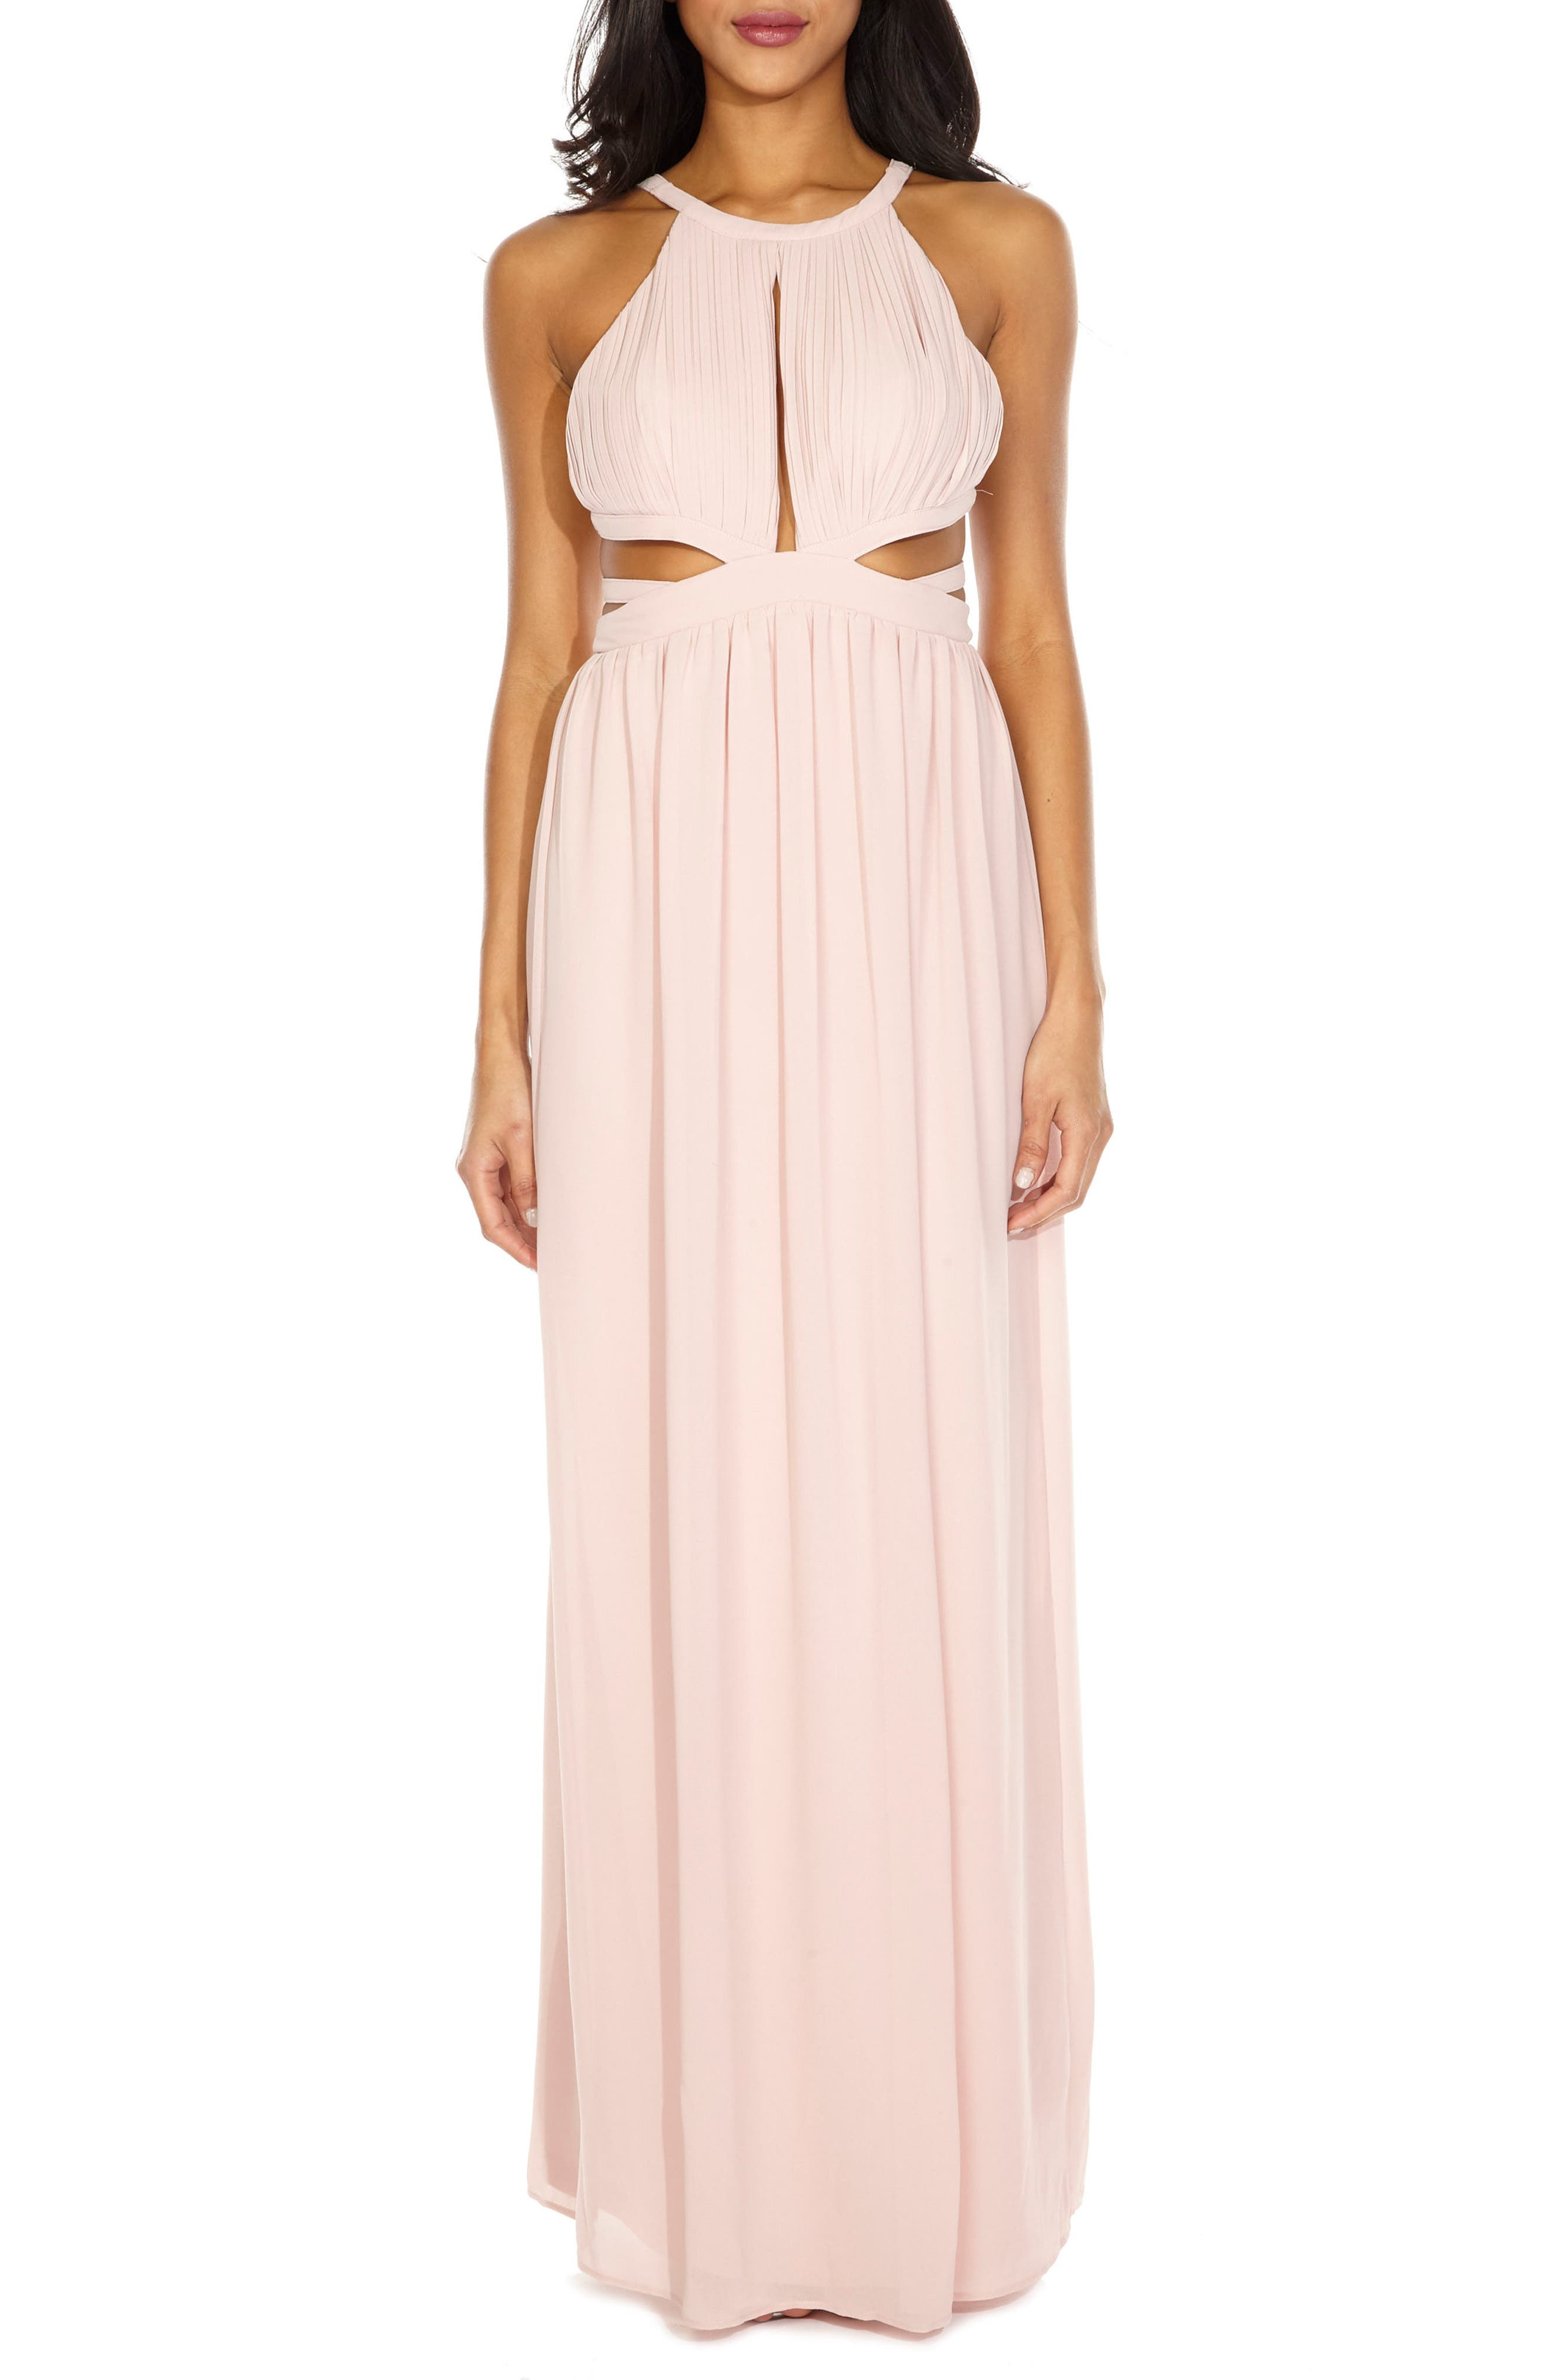 Evanthe Cutout Chiffon Gown,                         Main,                         color, Pearl Pink